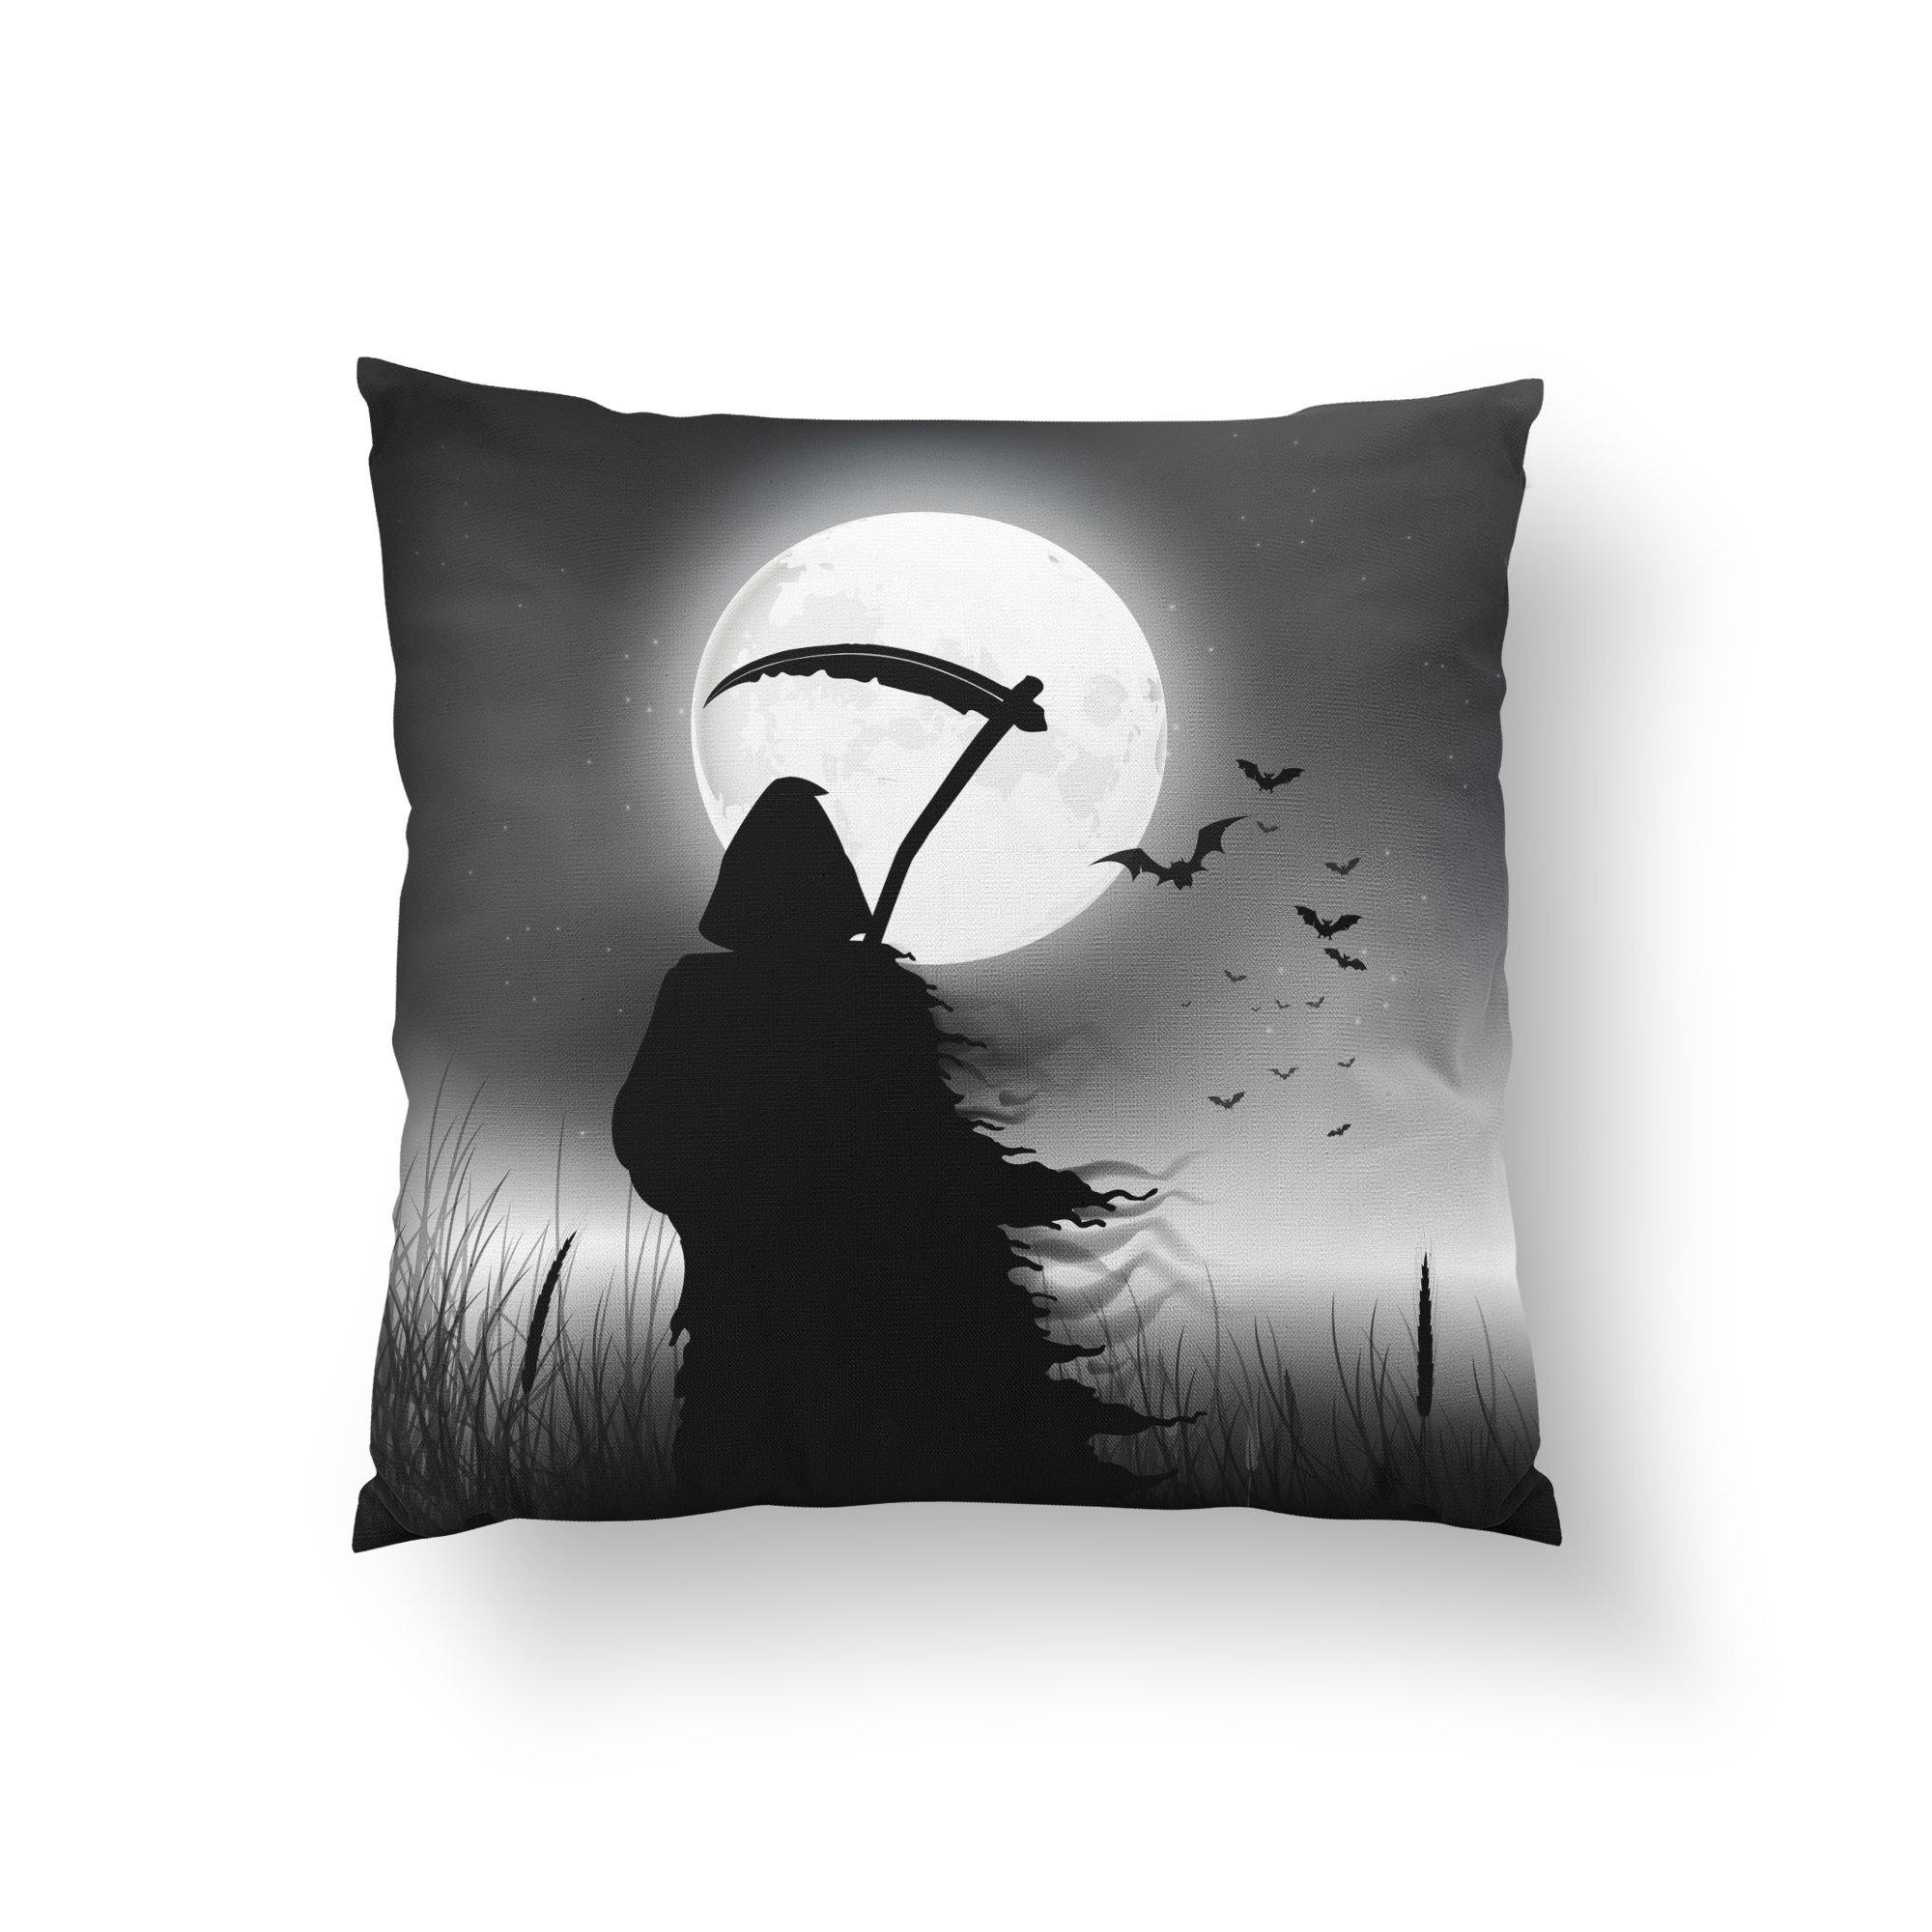 Grim Reaper Halloween Throw Pillow - Pillow Covers - W.FRANCIS